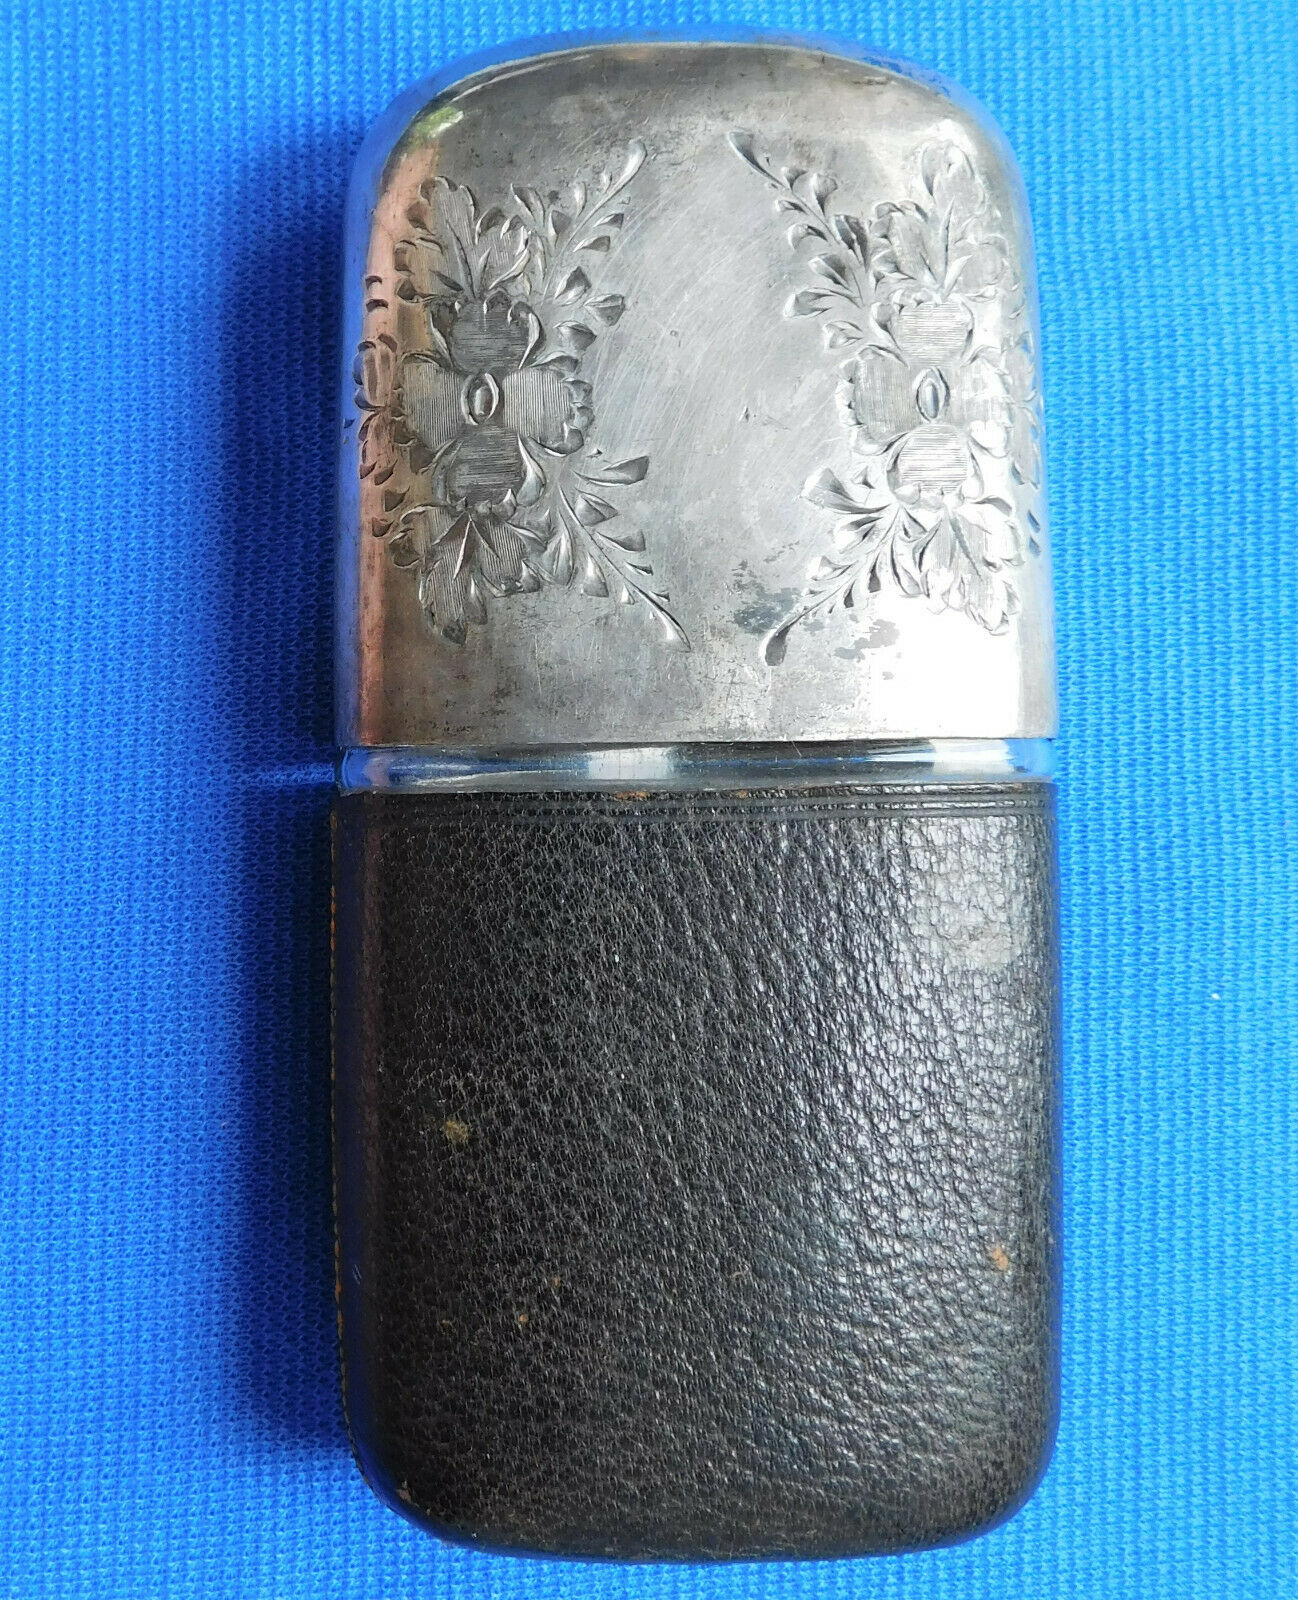 Vintage glass hip flask Engraved flowers on drinking cup INCOMPLETE LID MISSING